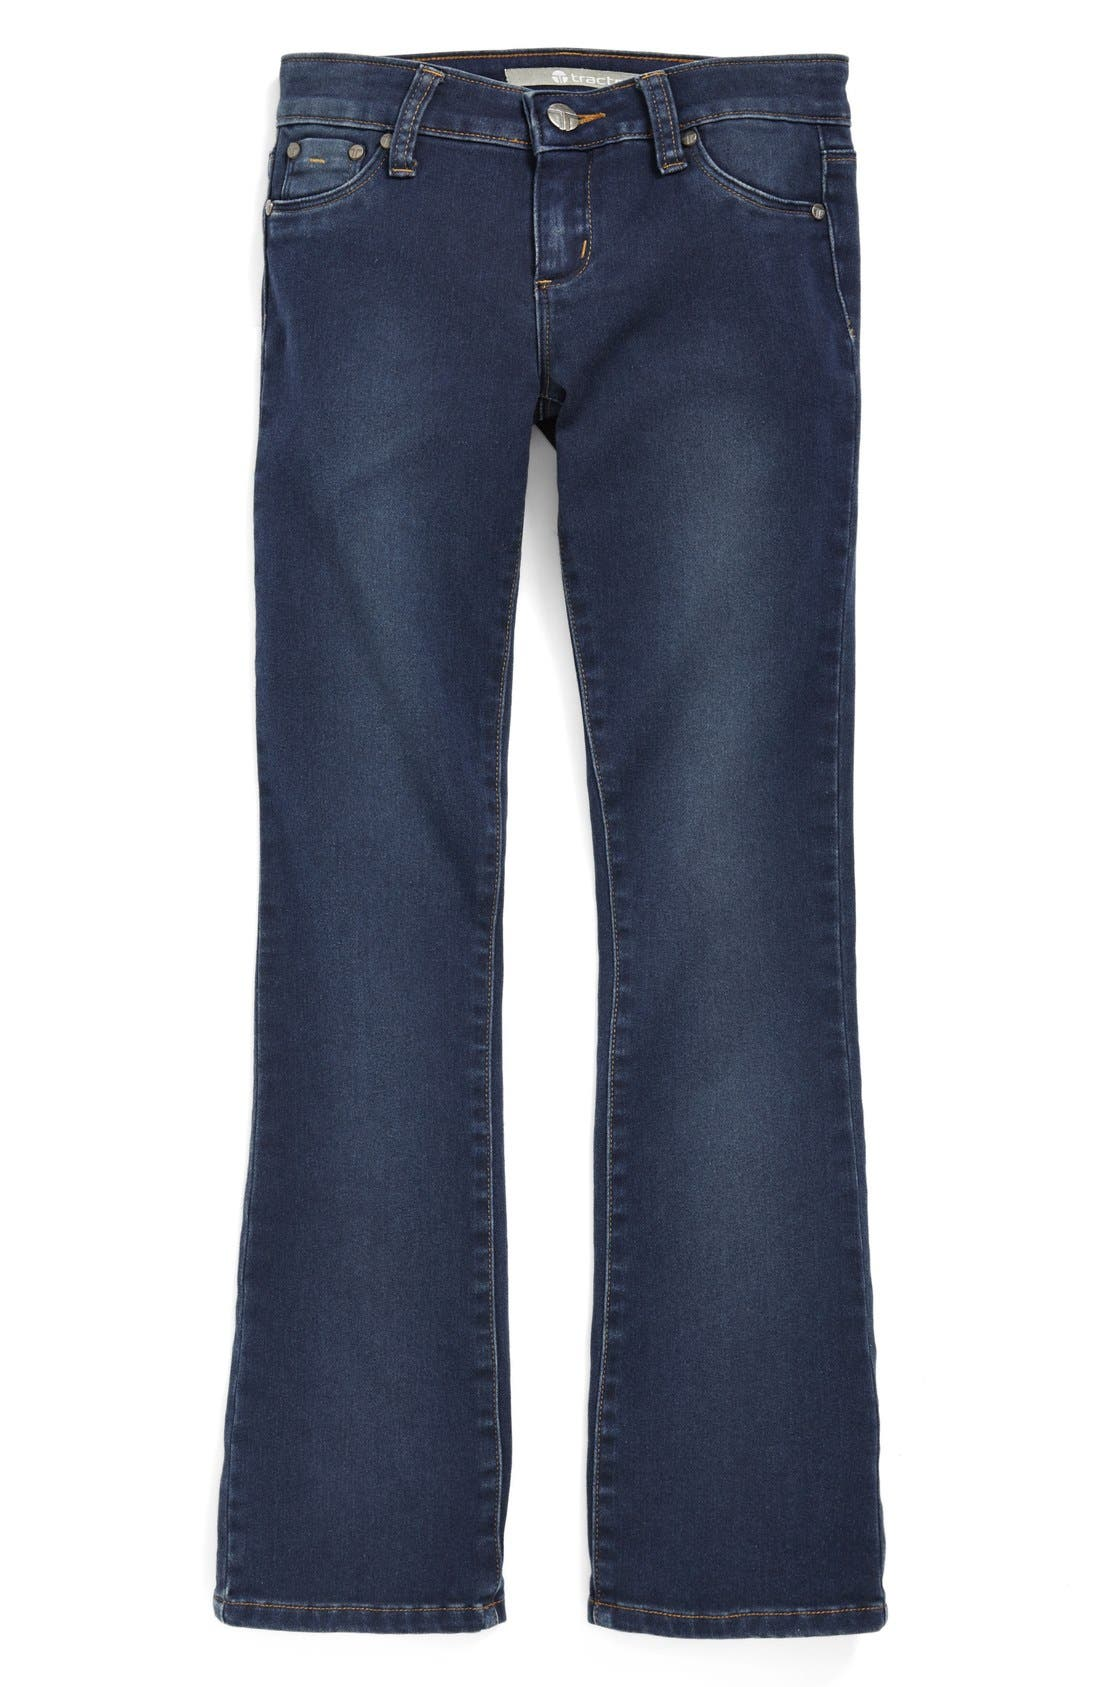 Alternate Image 1 Selected - Tractr Bootcut Stretch Denim Jeans (Big Girls)